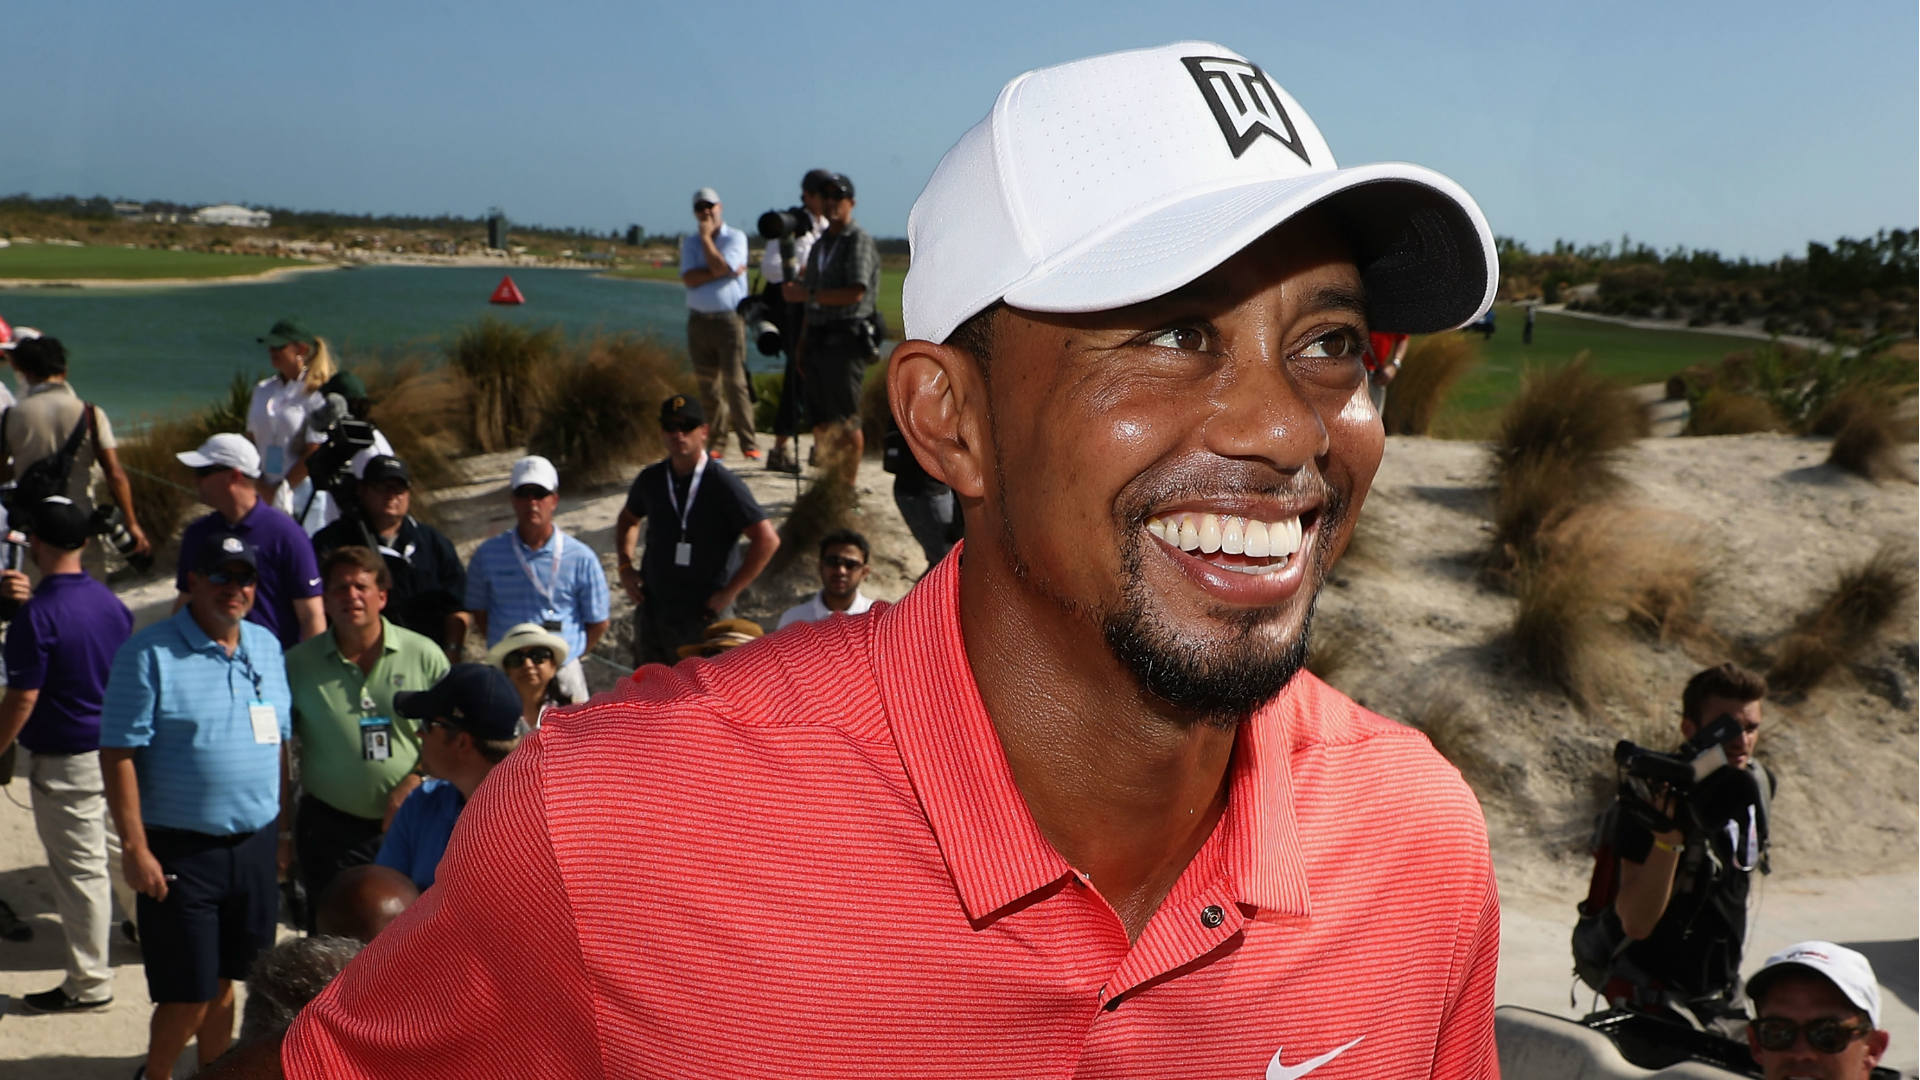 Tiger Woods to skip Honda Classic, play Arnold Palmer Invitational